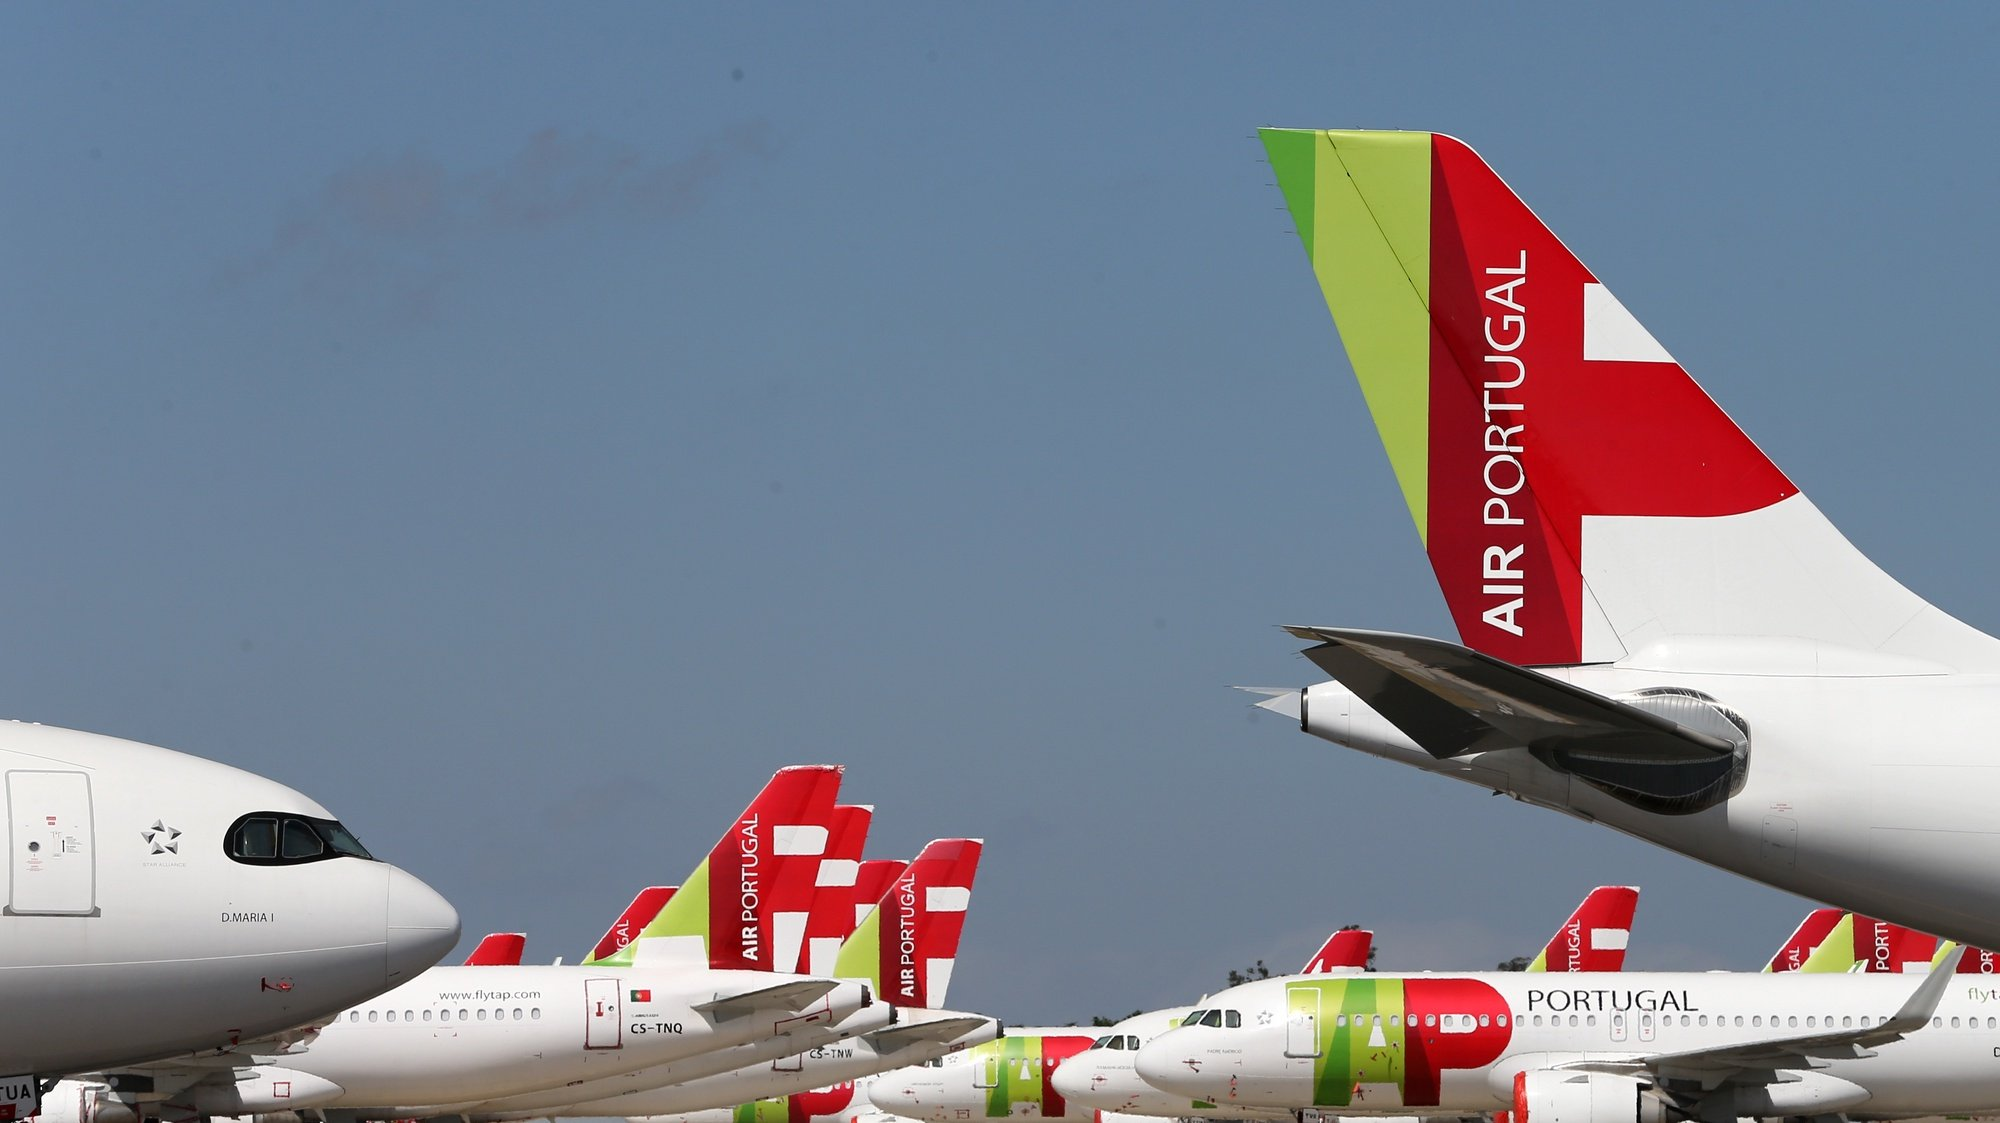 File photo dated from 09 April 2020 of TAP Air Portugal aircraft grounded at Humberto Delgado airport closed for passenger traffic as part of the exceptional traffic measures to combat the epidemiological situation of Covid-19, in Lisbon, Portugal, 09 April 2020 (reissued 02 July 2020). The granting of state support to TAP has been under discussion since the airline's activity came to a standstill because of the coronavirus pandemic, with an agreed injection of up to 1,200 million euros. MARIO CRUZ/LUSA